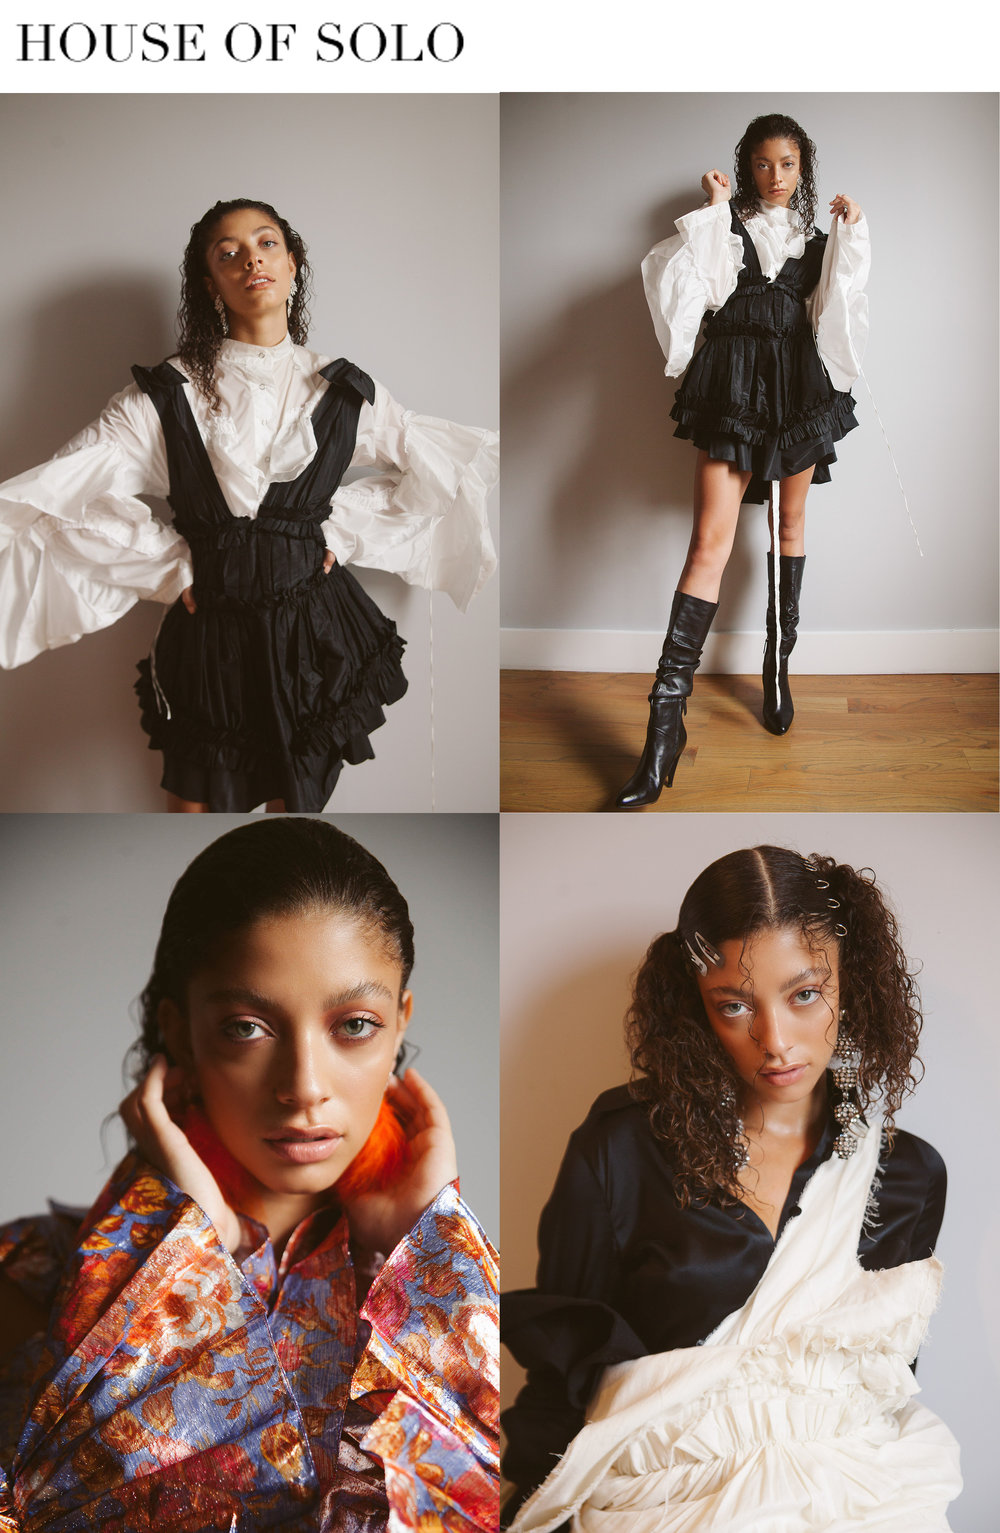 house of solo fashion editorial featuring kelsey randall black silk taffeta gathered ruffle mini jumper dress, floral silk ruffle sleeve cold shoulder blouse and muslin dress   Photographer: Katie Borrazzo // www.katieborrazzo.com // @katieborrazzo  Model: Camryn Herold @ Elite // @camrynherold  Stylist: Kingsley Osuji // www.kingsleyosuji.com // @kingsley_nyc  Hair: Payton Holbrook using Oribe @ Pazzion Salon NYC // @boytoy9  Makeup artist: Mariz Mikhail // @mariz.mik